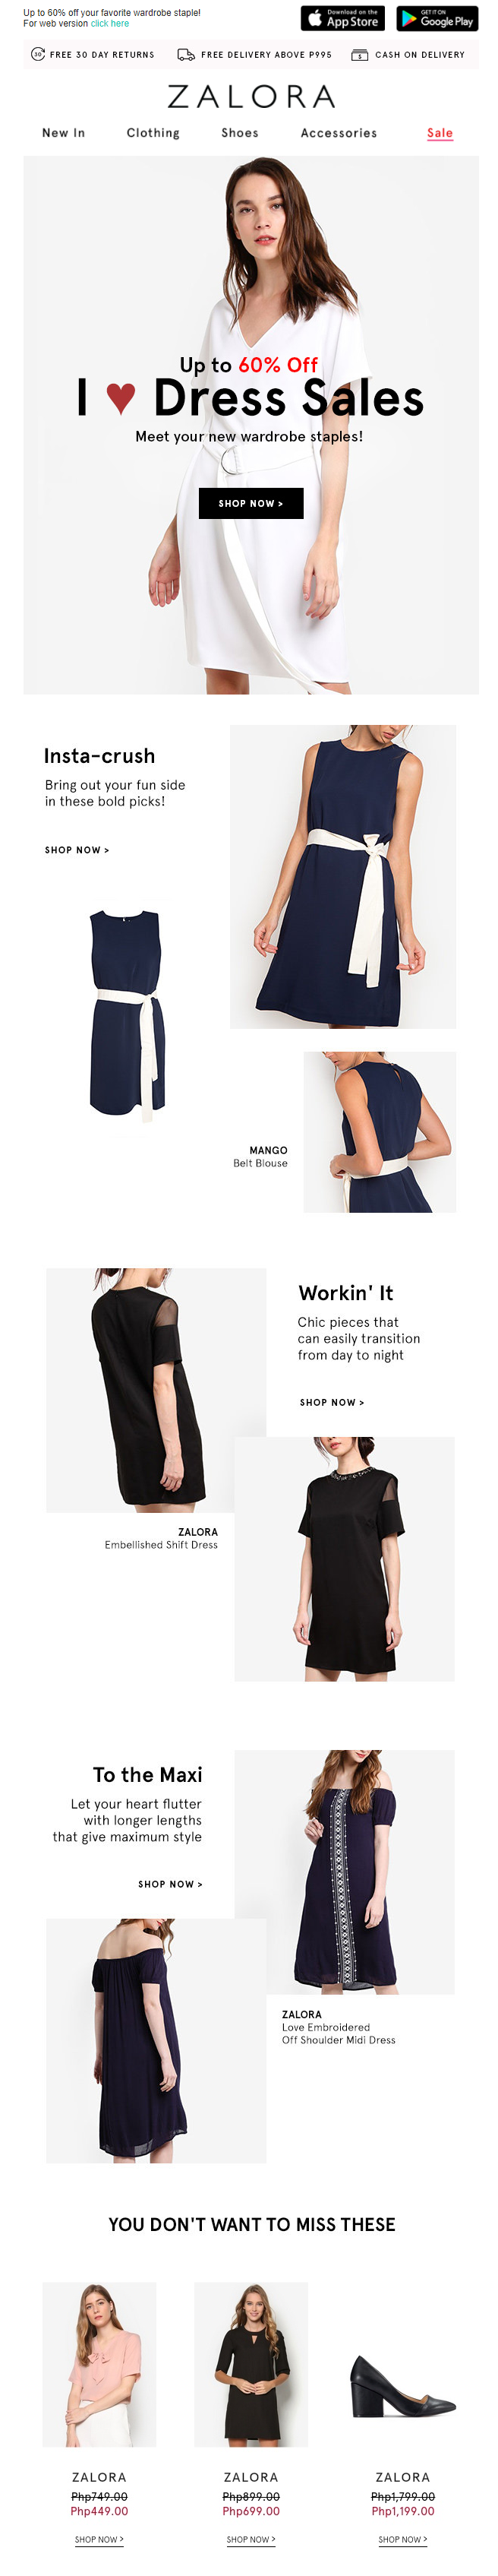 zalora-email3.png